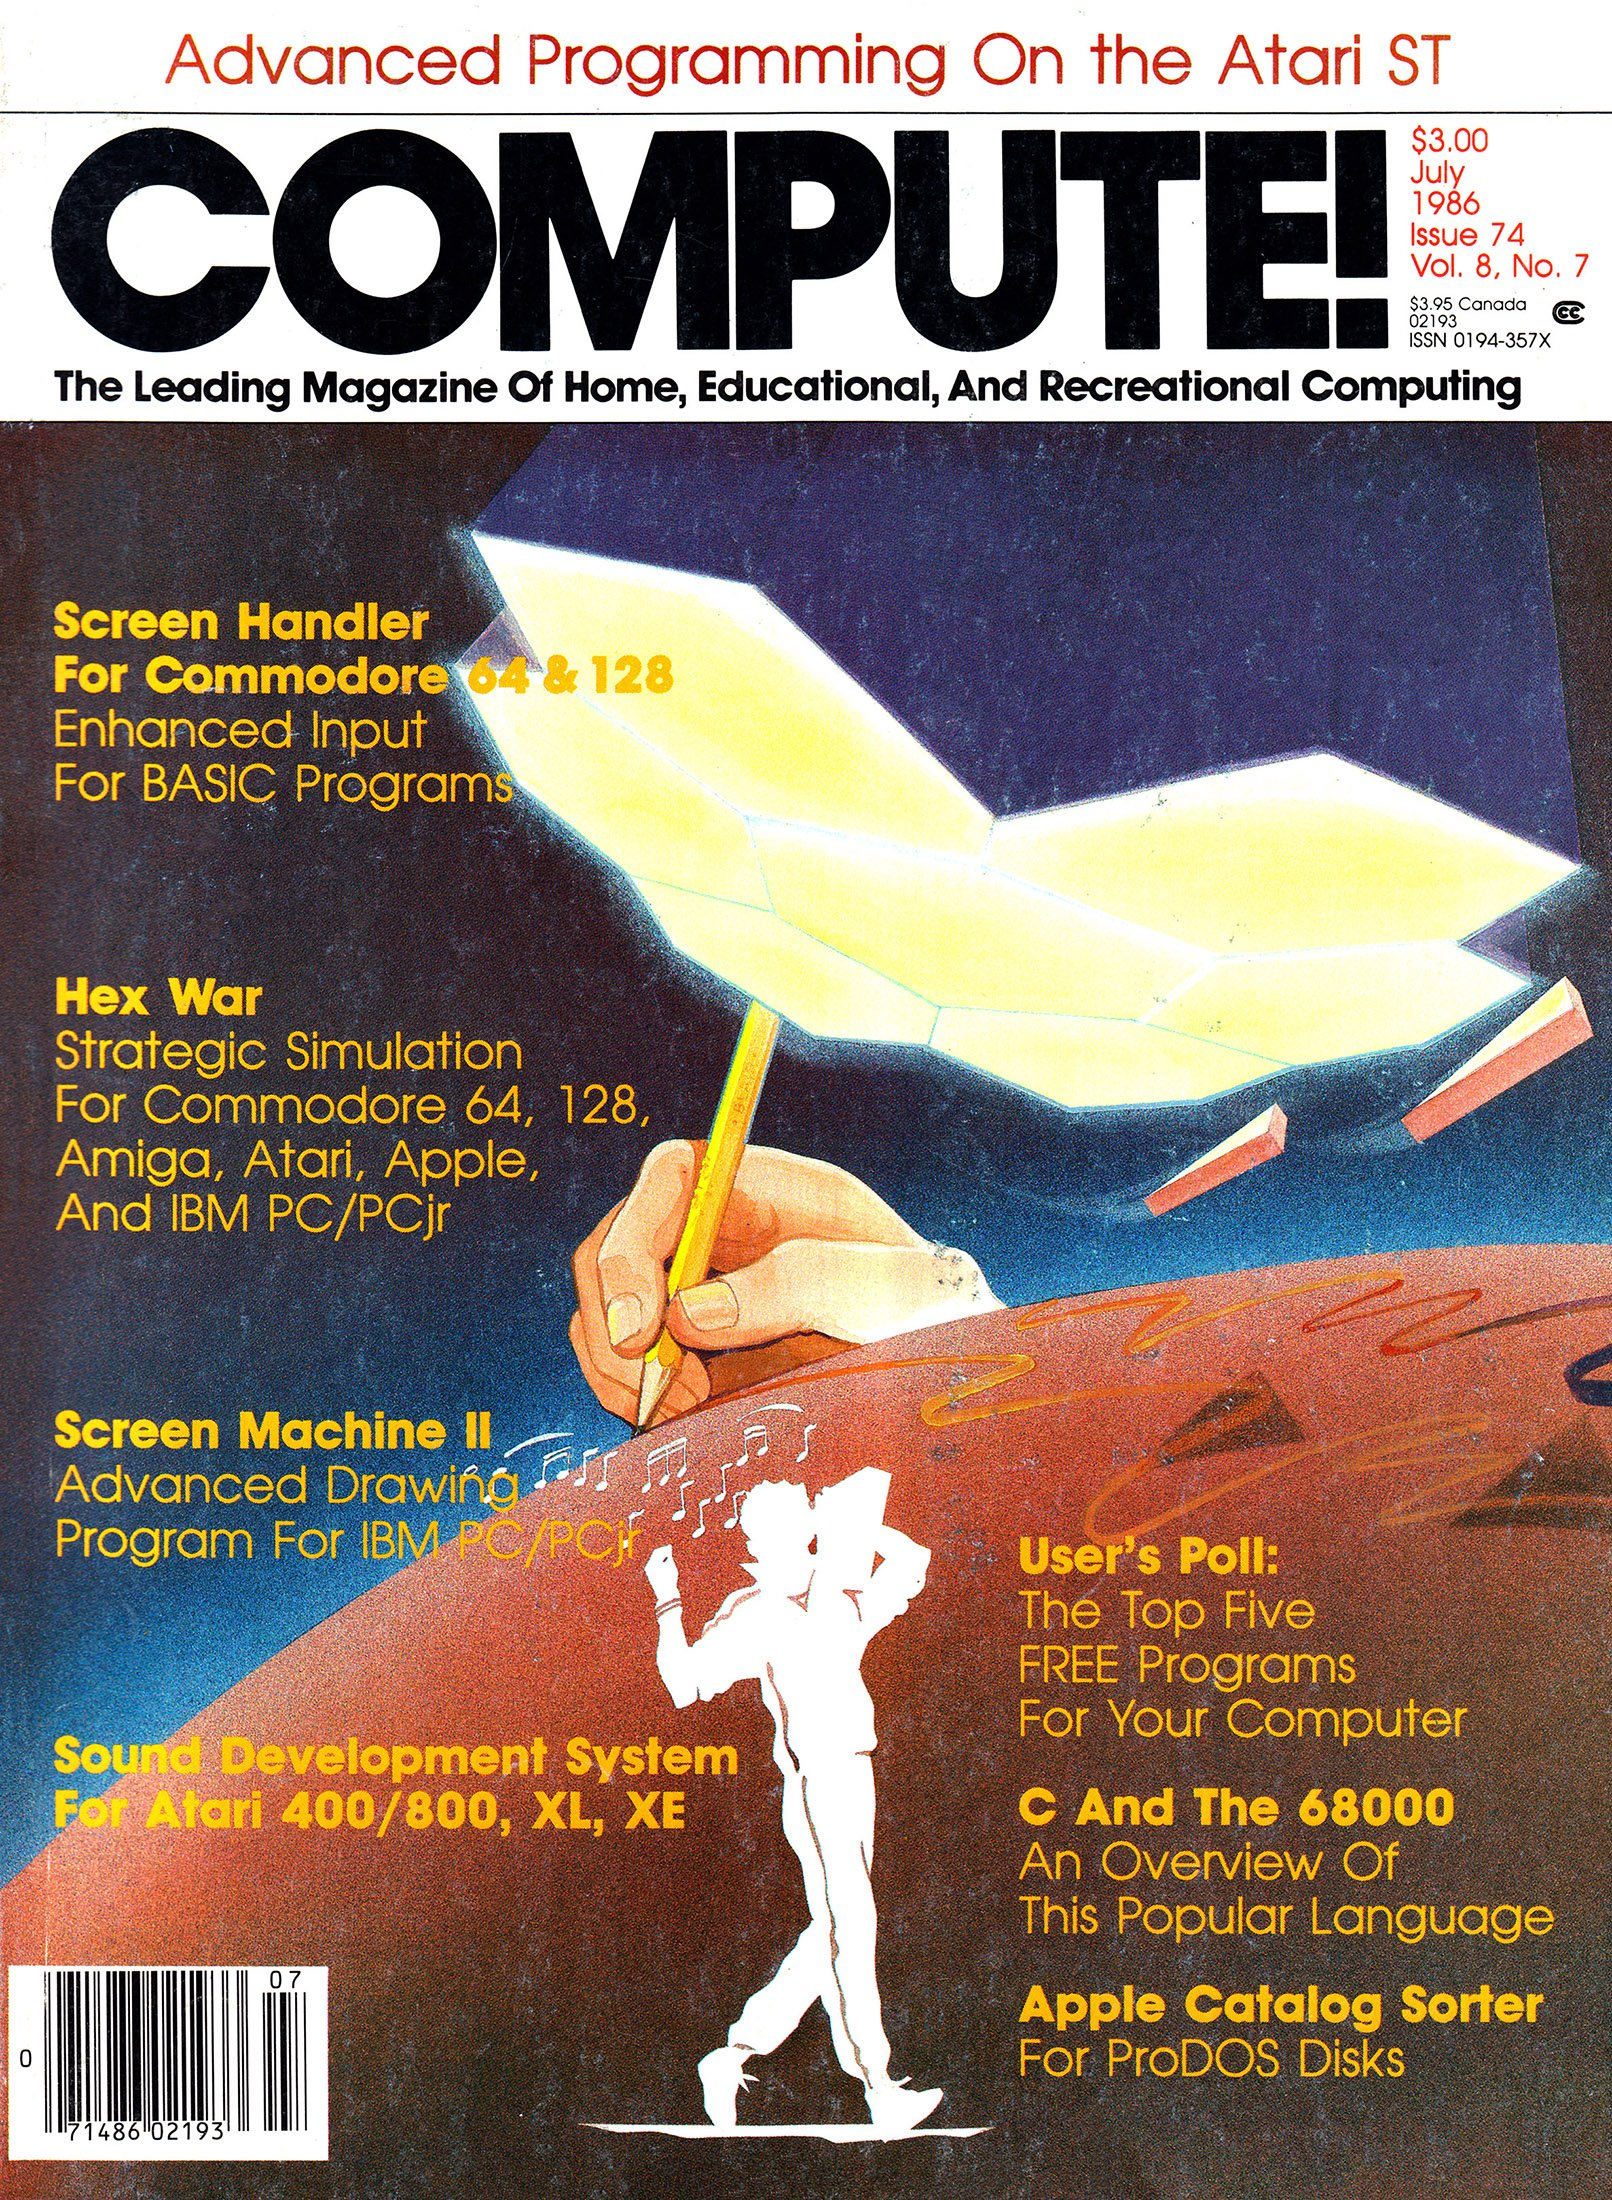 Compute! Issue 074 Vol. 8 No. 7 (July 1986)